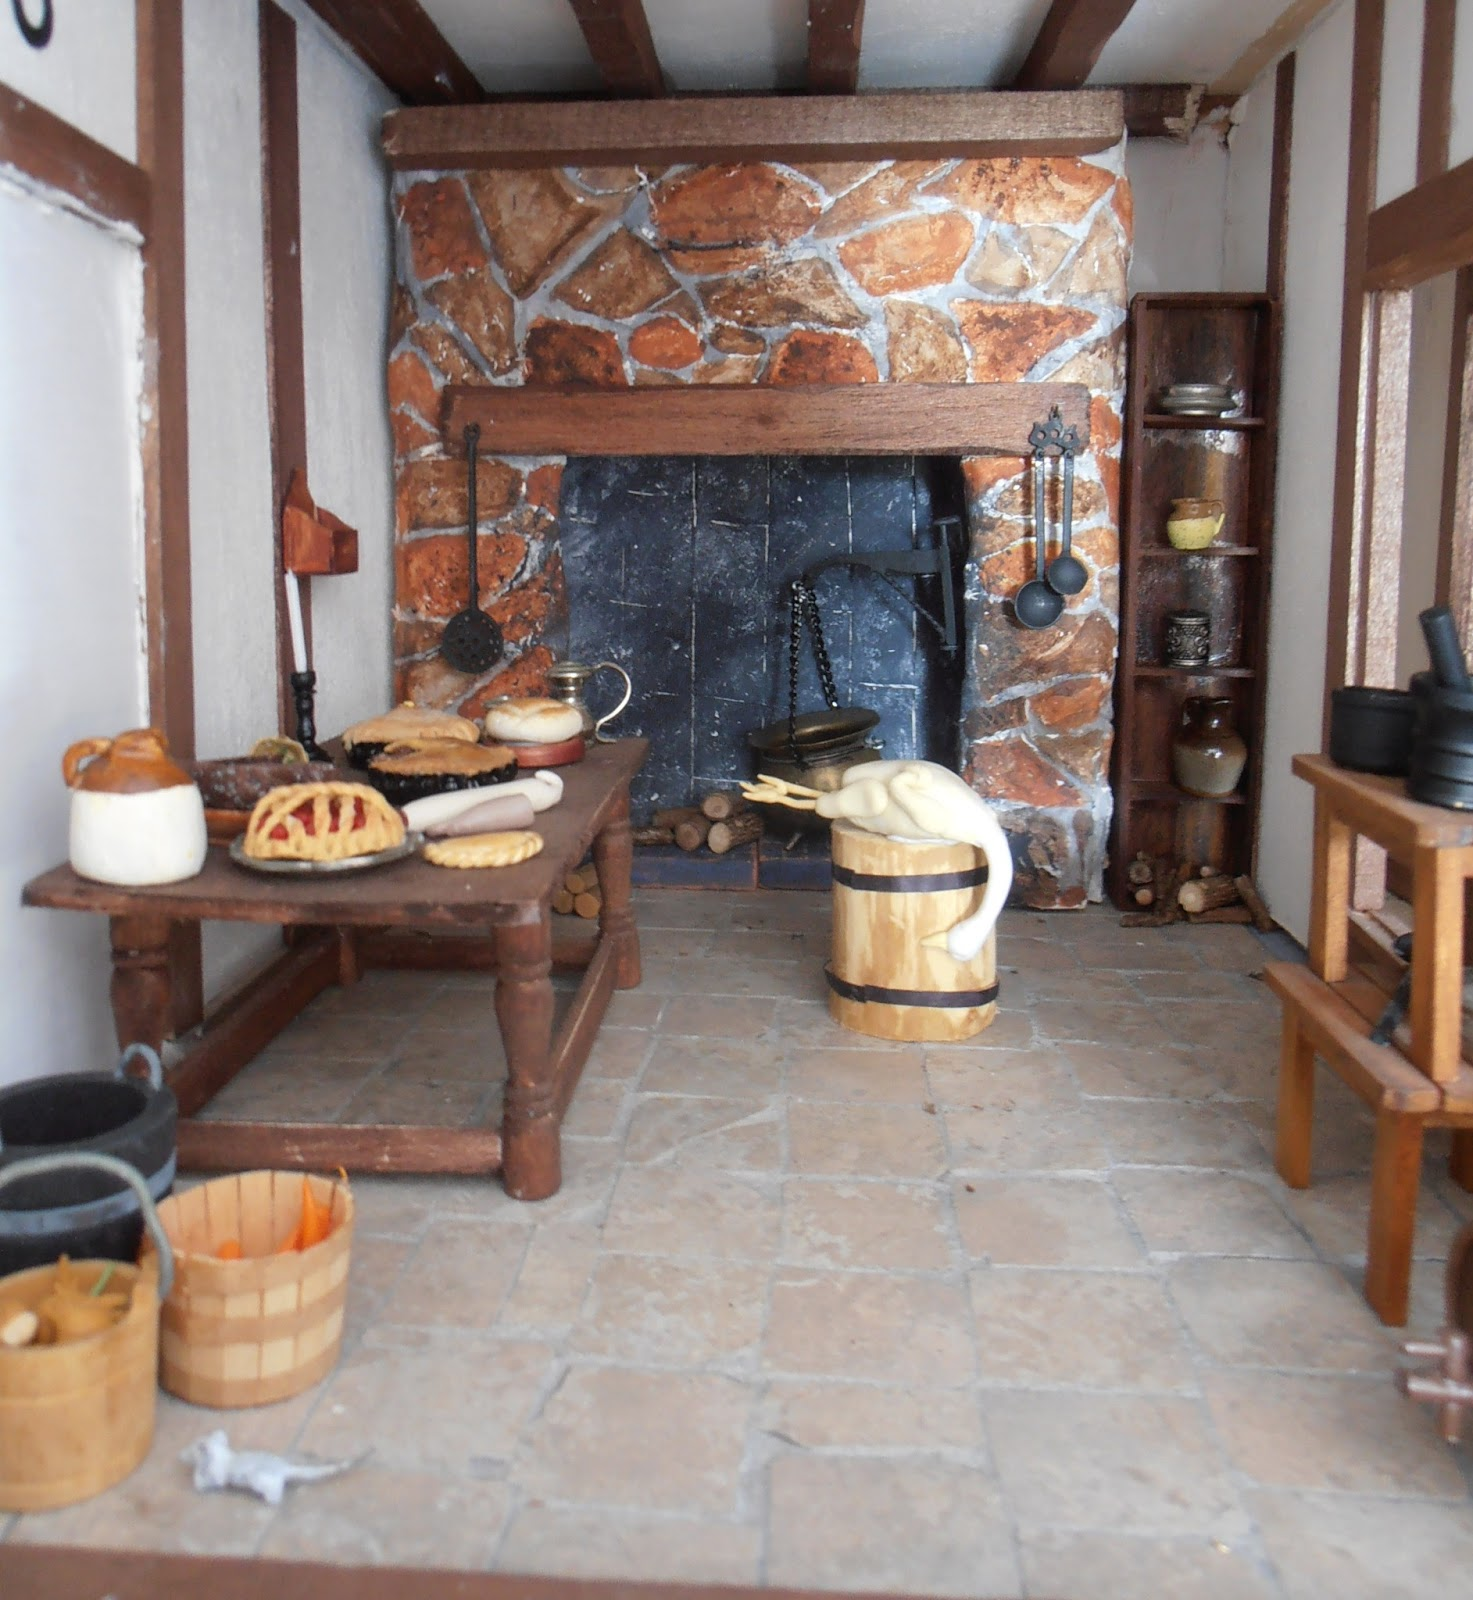 Dolls House Kitchen Furniture Dolls Houses And Minis Accessories For A Tudor Dolls House Kitchen